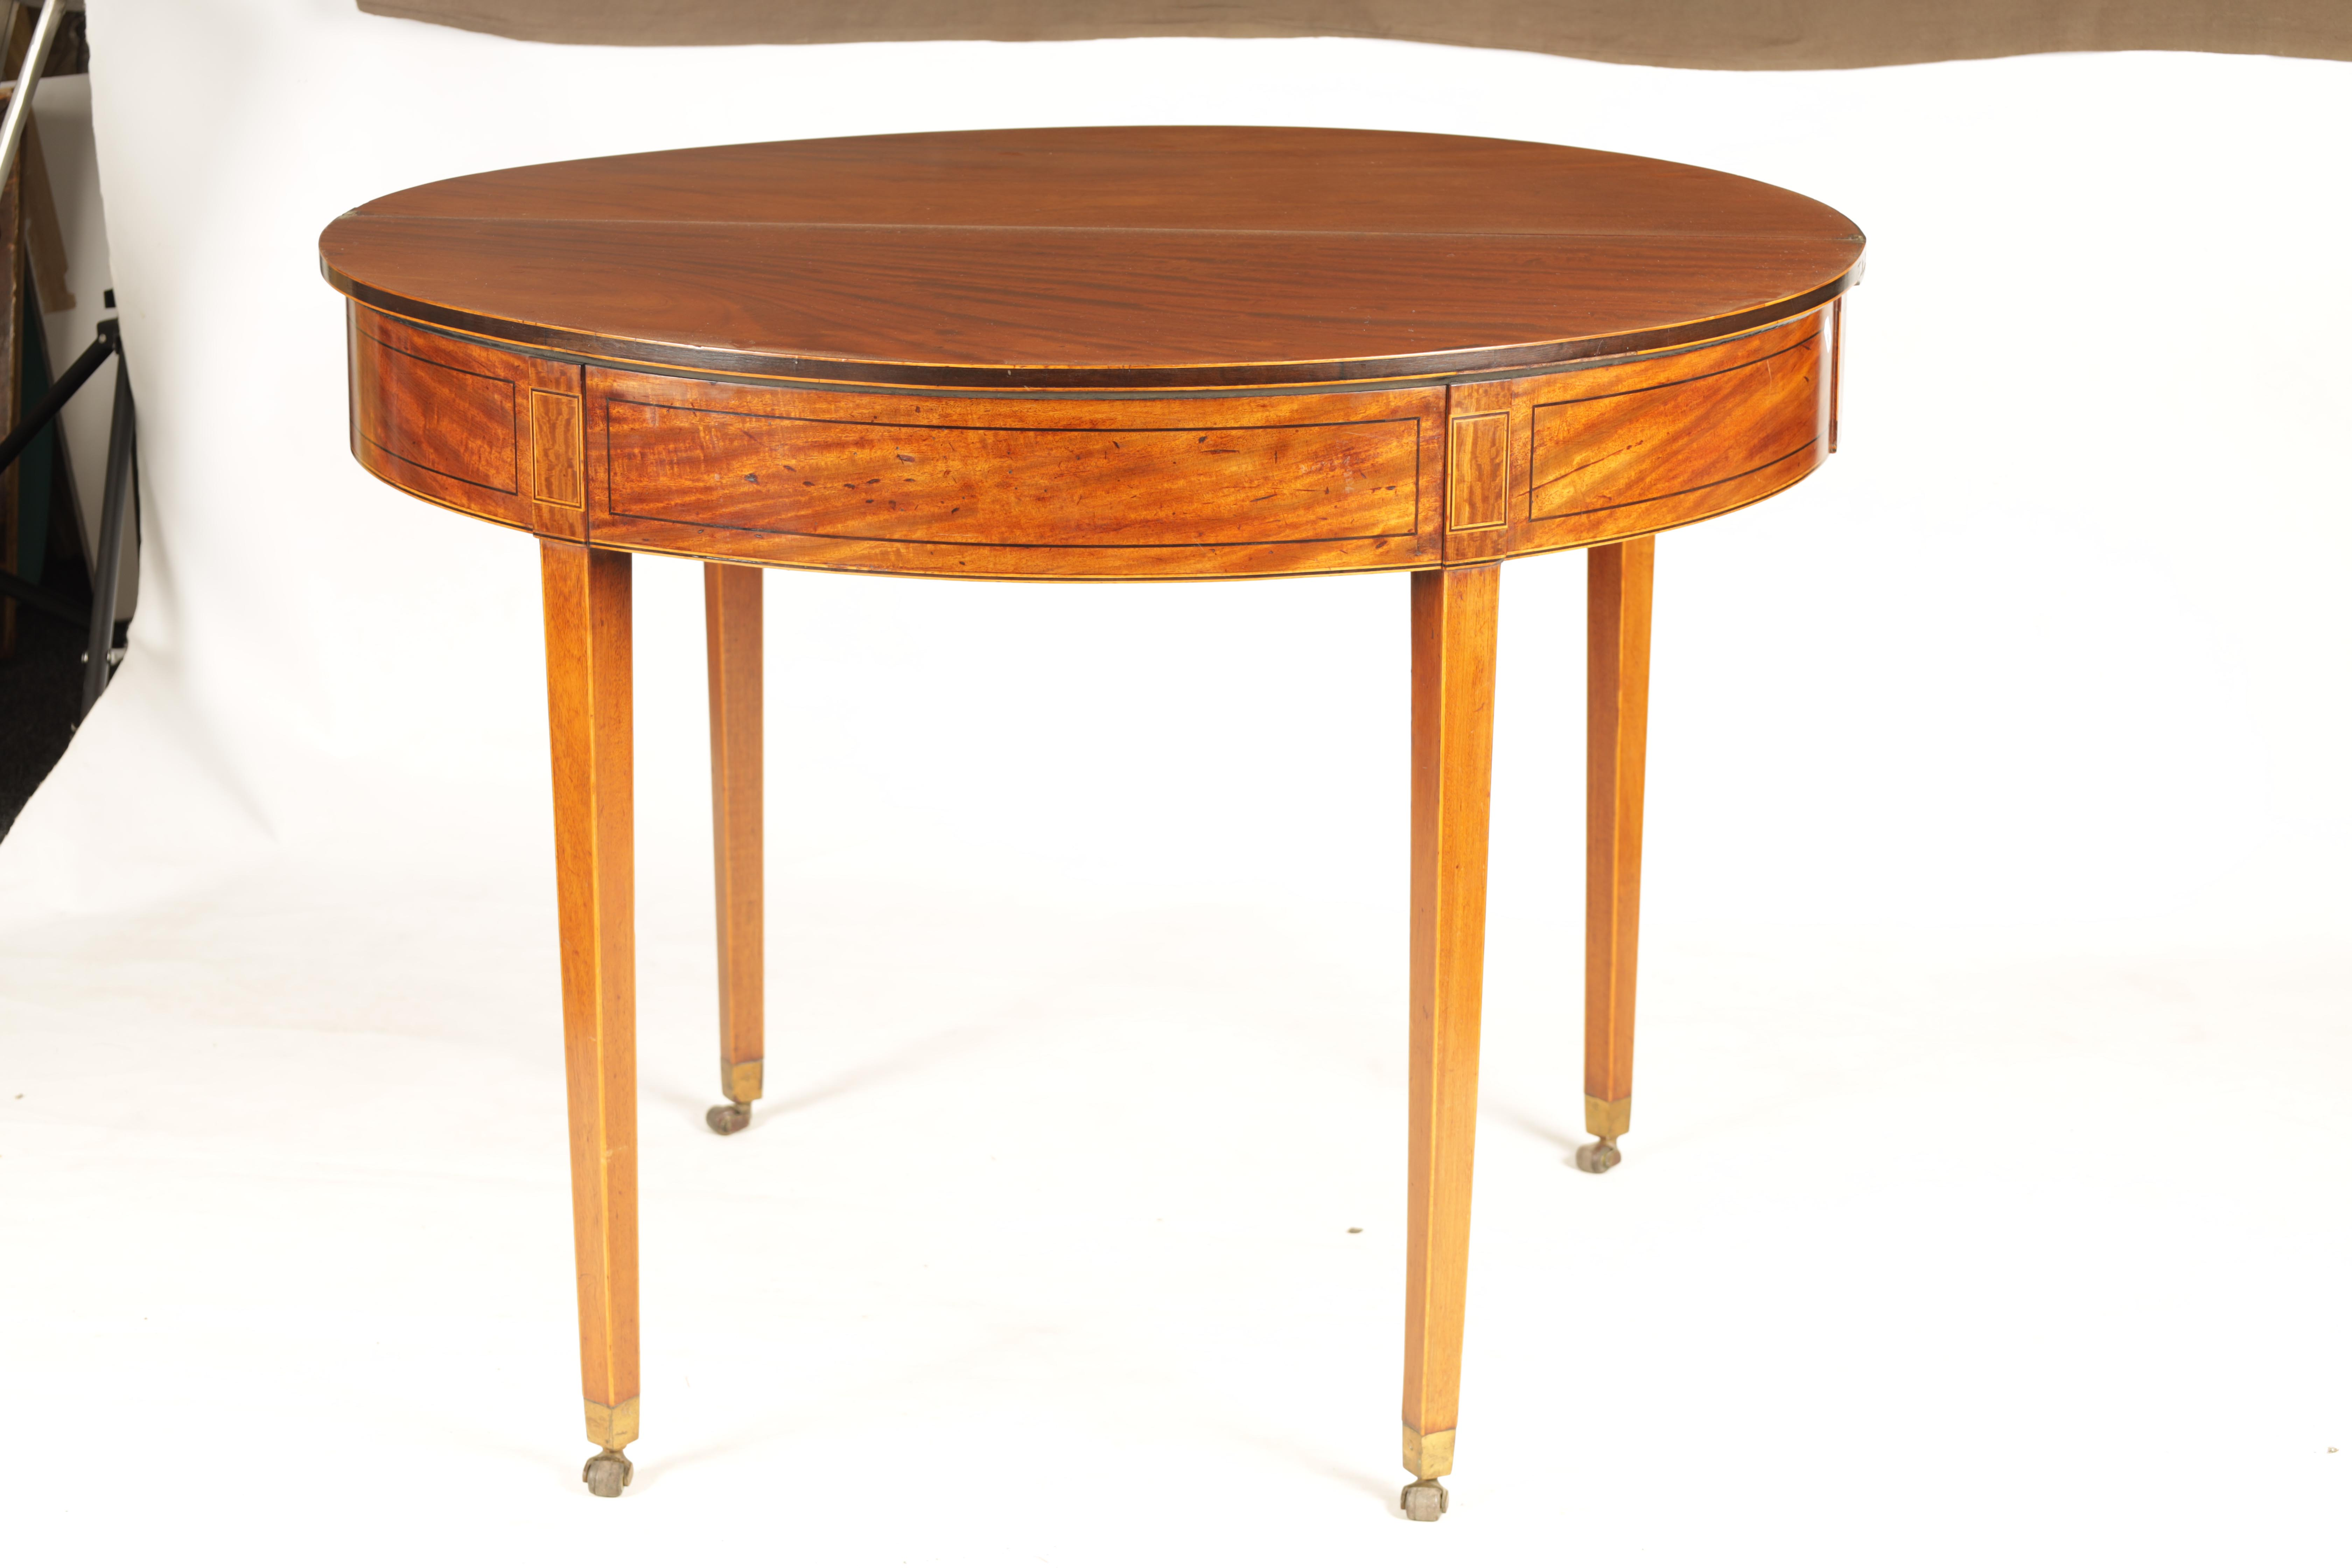 A GEORGE III FIGURED SATINWOOD D END TEA TABLE with hinged top and double gate rear legs; standing - Image 6 of 8